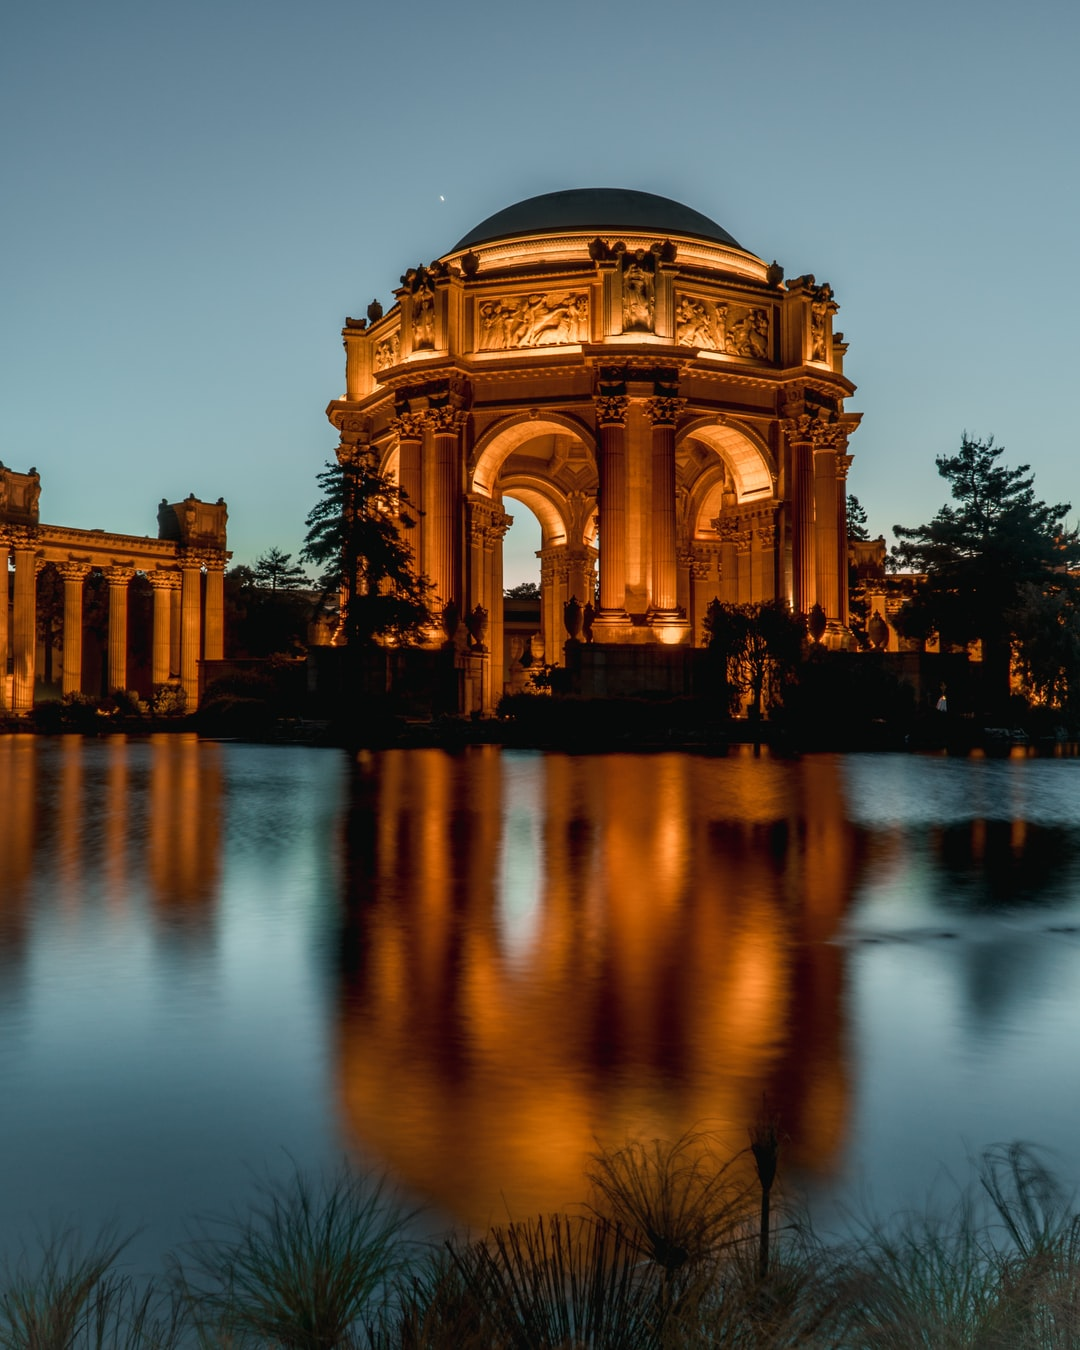 This is one of my favorite spots, not just to capture photos, but also to relax and admire the amazing architecture and incredible grounds. It is often very quiet during the mornings, which is my favorite time to get out and about. There is no shortage of amazing places to photograph in San Francisco.